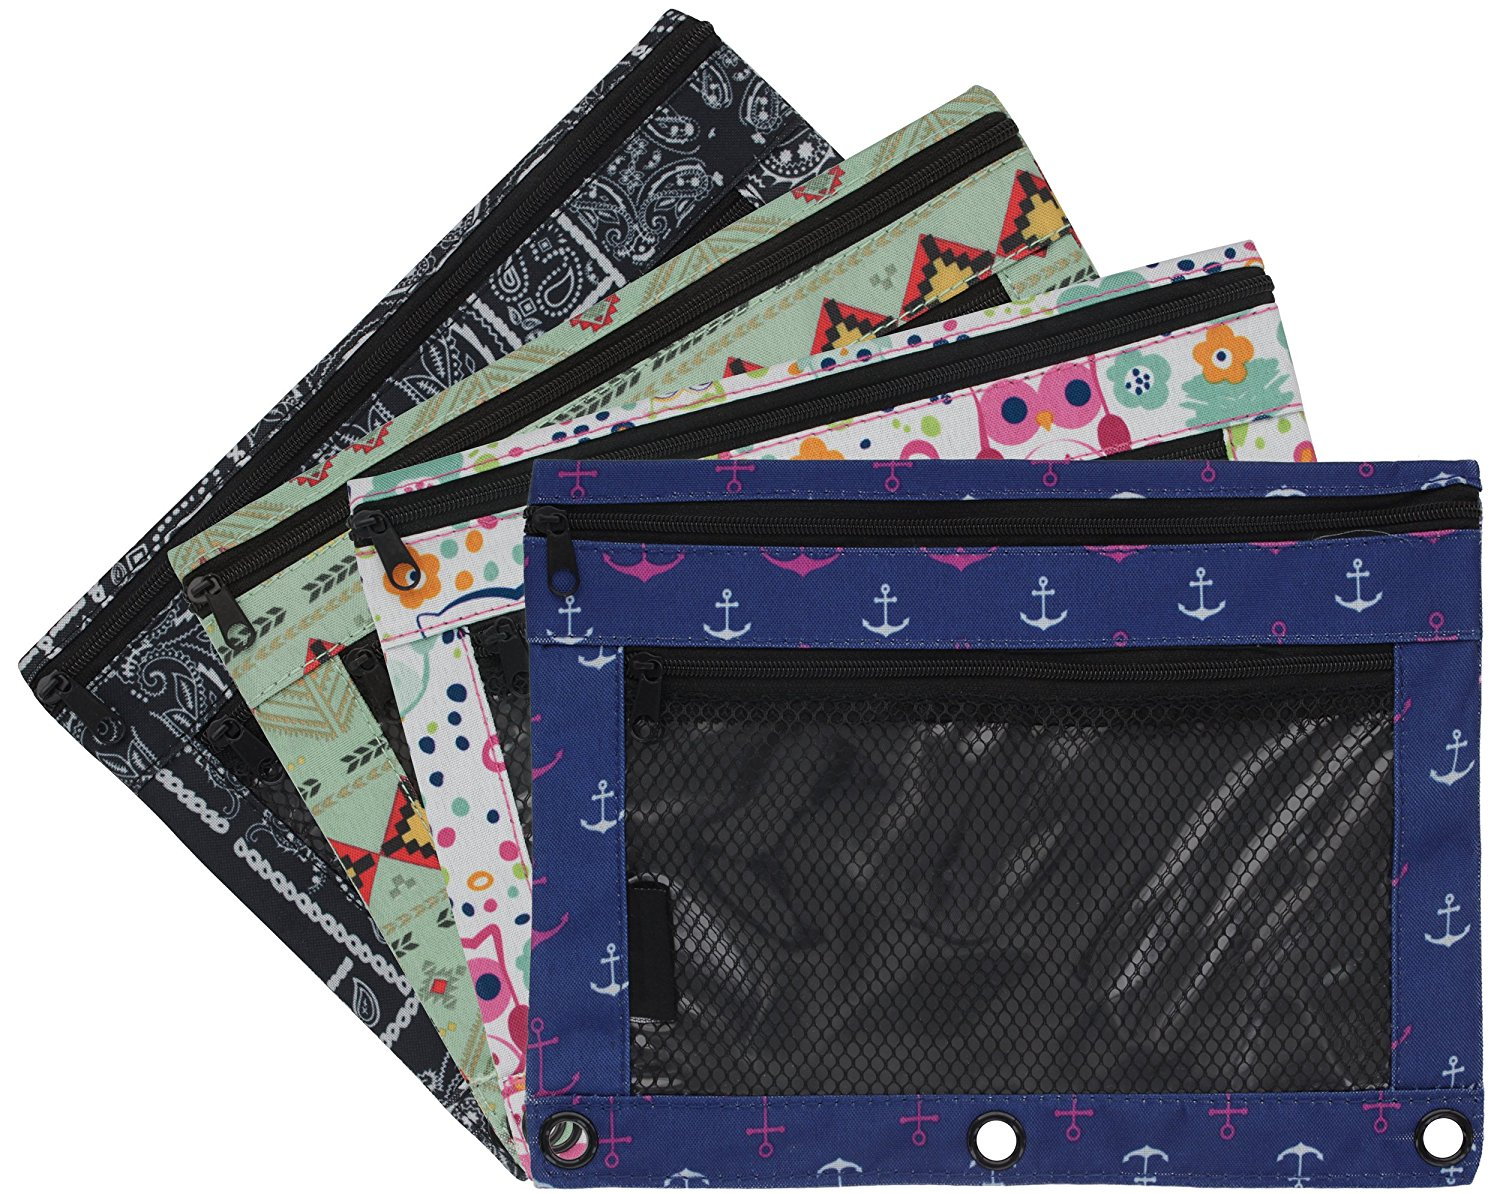 Emraw 2 Random Pack Double Pocket Zippered Trendsetters Pencil Pouches with 3-Ring Grommet Holes & Quick View Mesh Pocket - 4 Different Styles